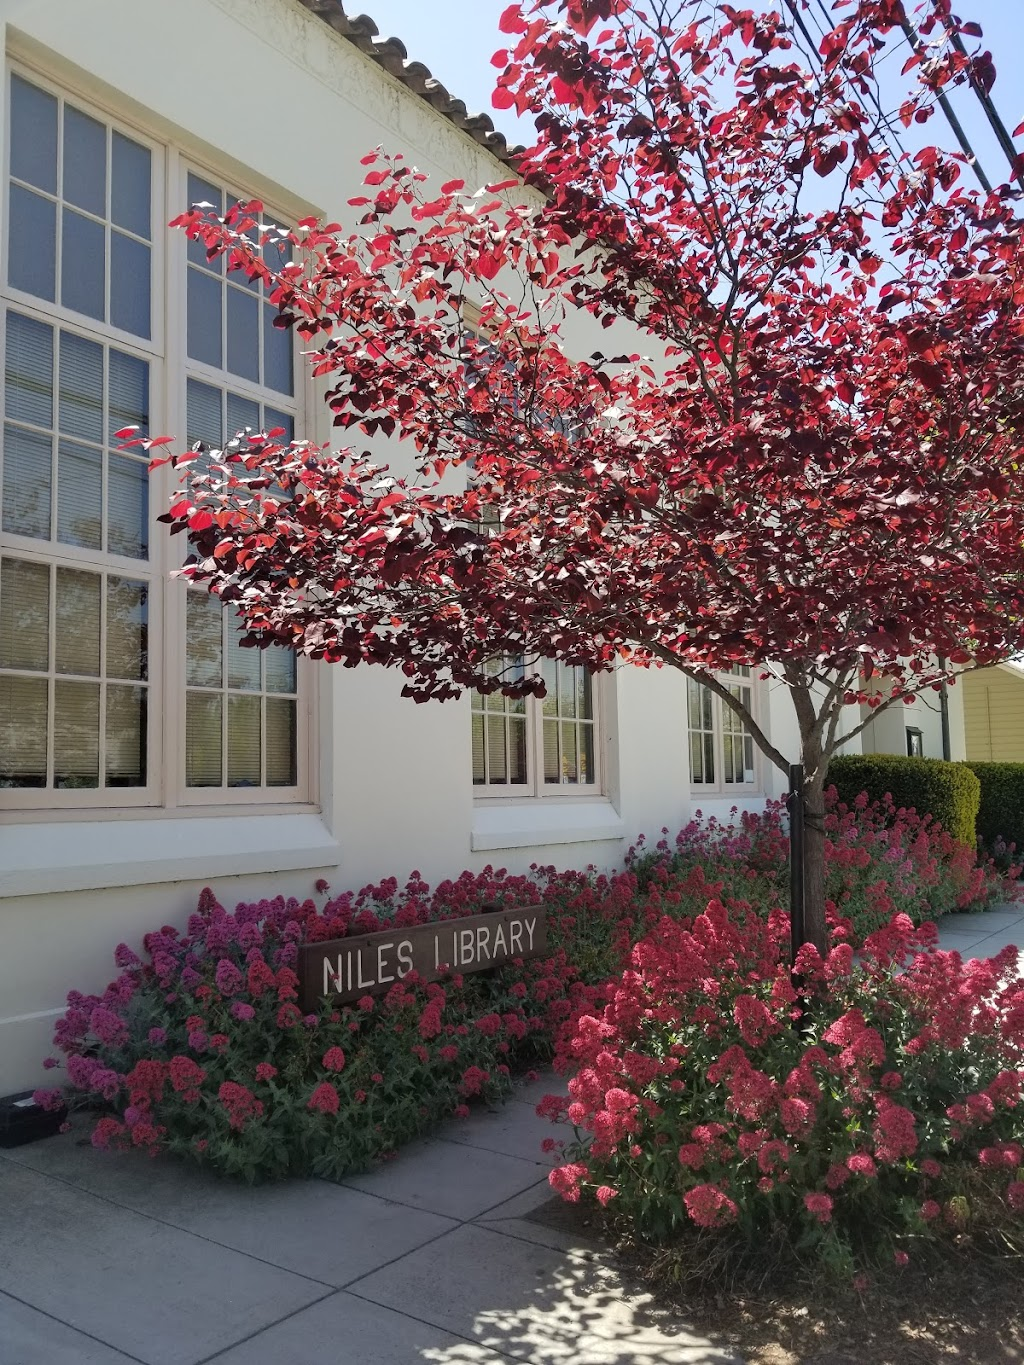 Niles Library - library  | Photo 3 of 10 | Address: 150 I St, Fremont, CA 94536, USA | Phone: (510) 795-2626